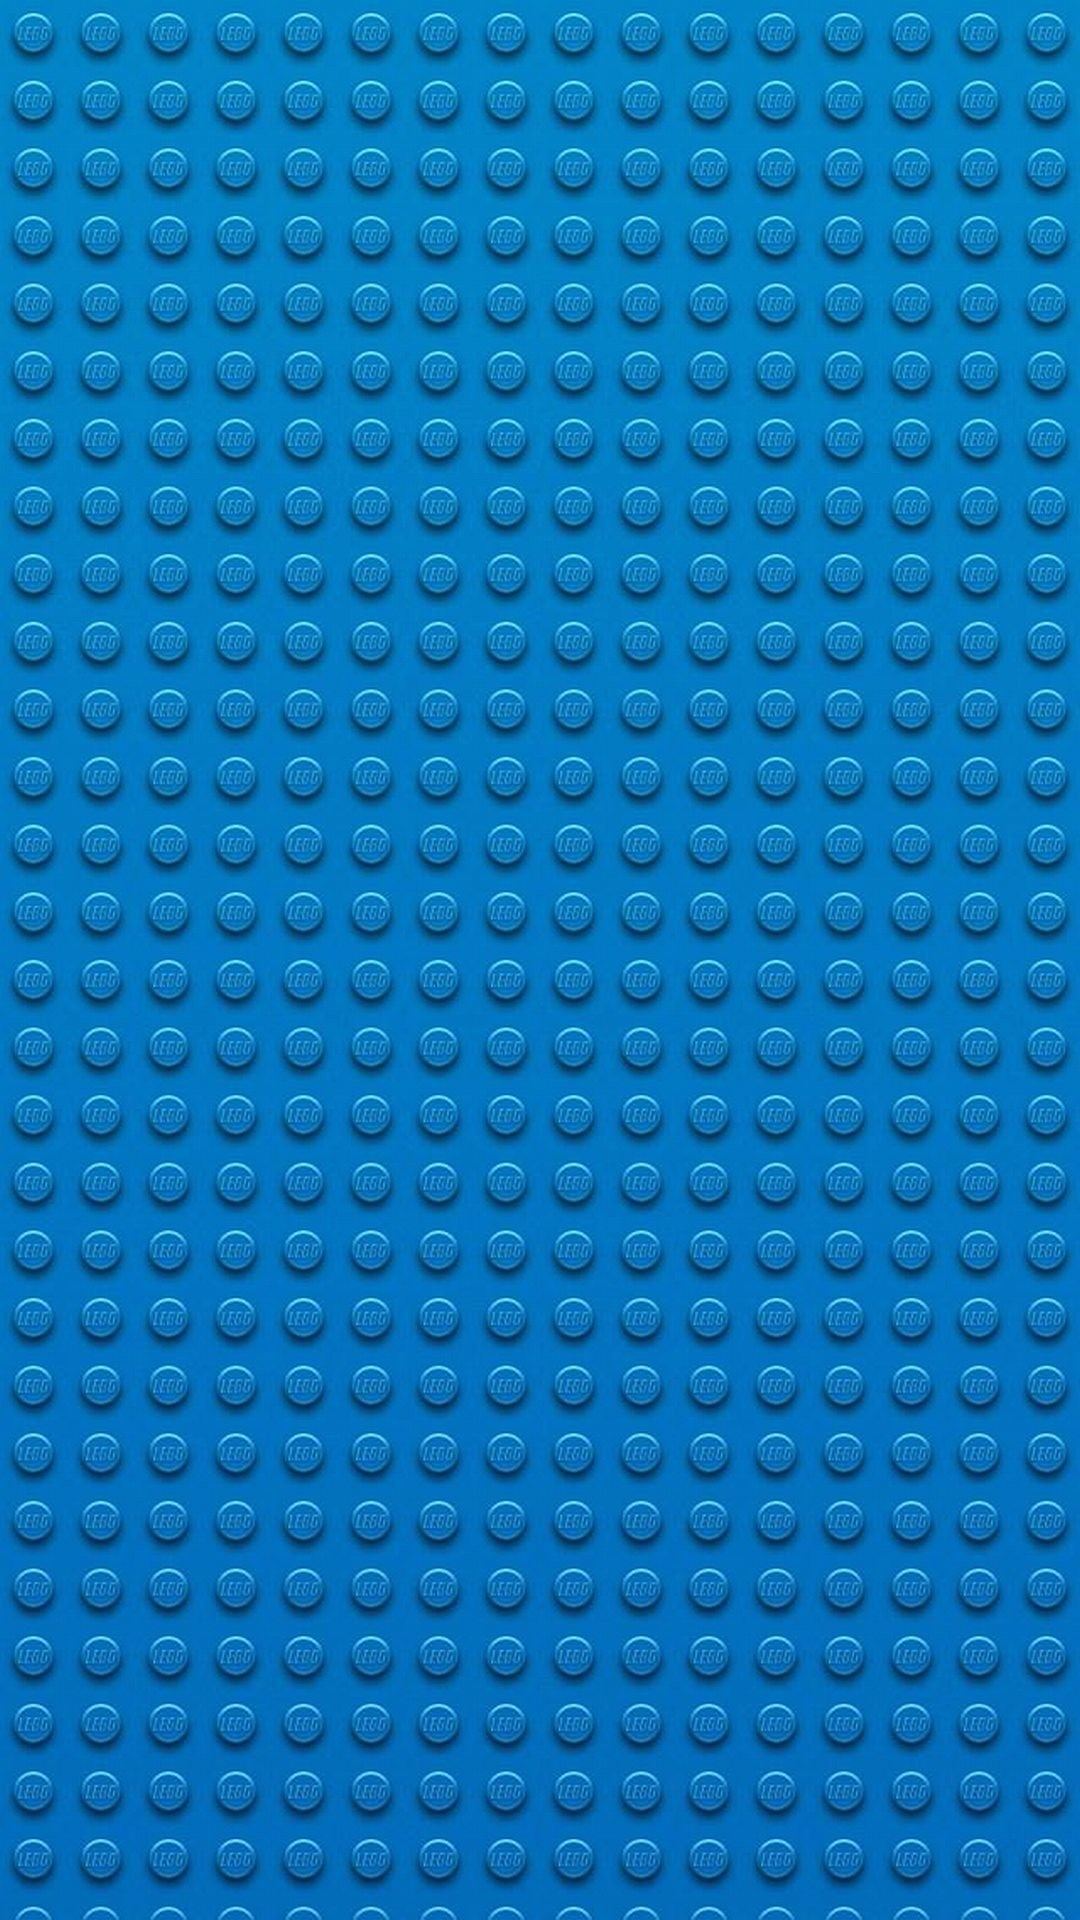 Blue Lego background. Tap to see more Texture iPhone Wallpapers.